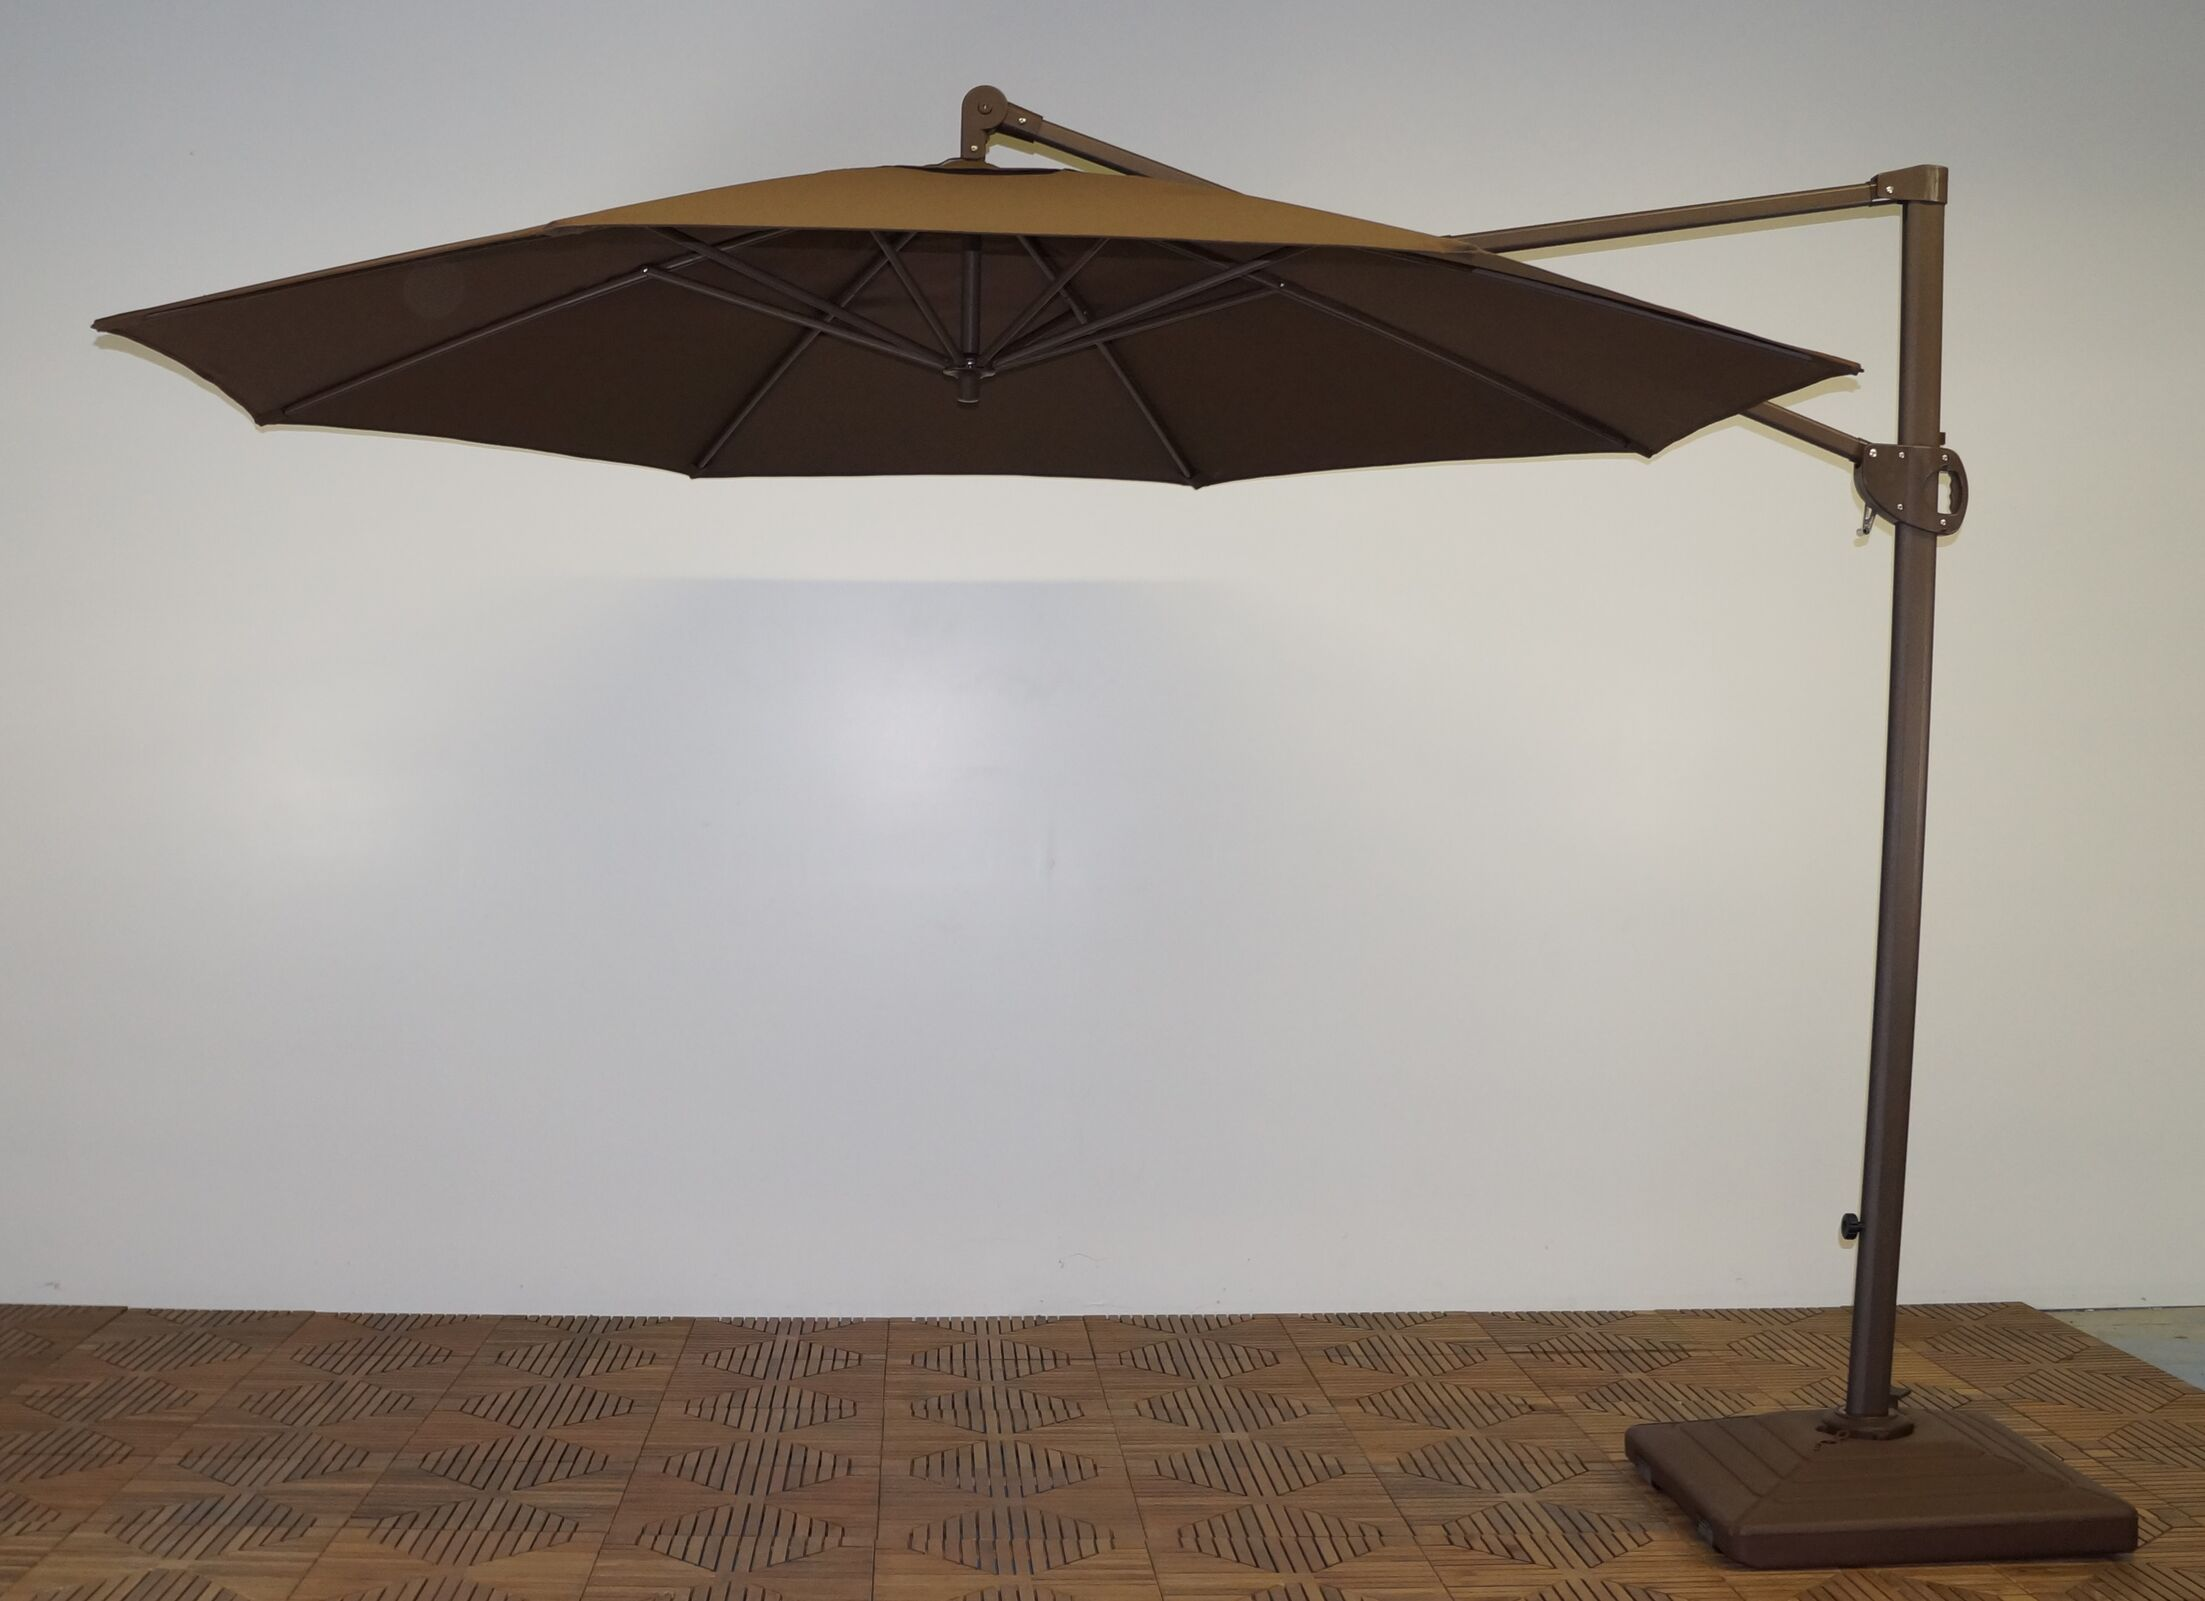 11' Cantilever Umbrella Fabric: Kona Brown